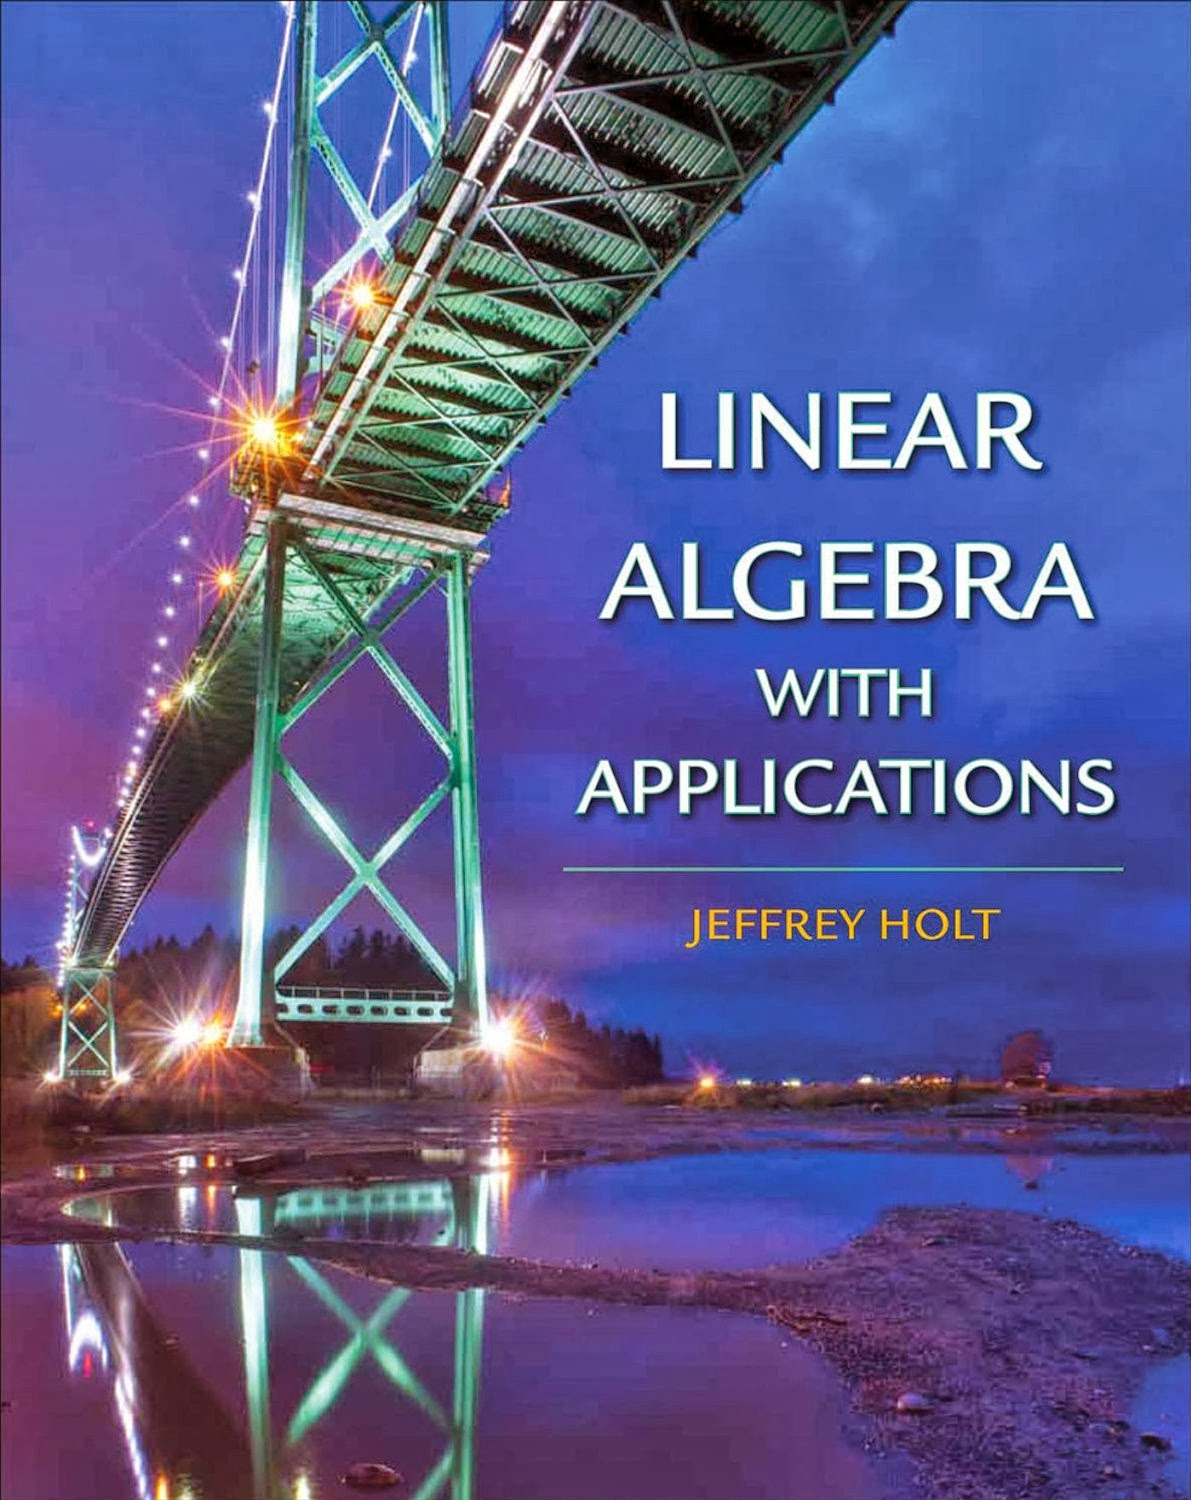 http://kingcheapebook.blogspot.com/2014/03/linear-algebra-with-applications.html